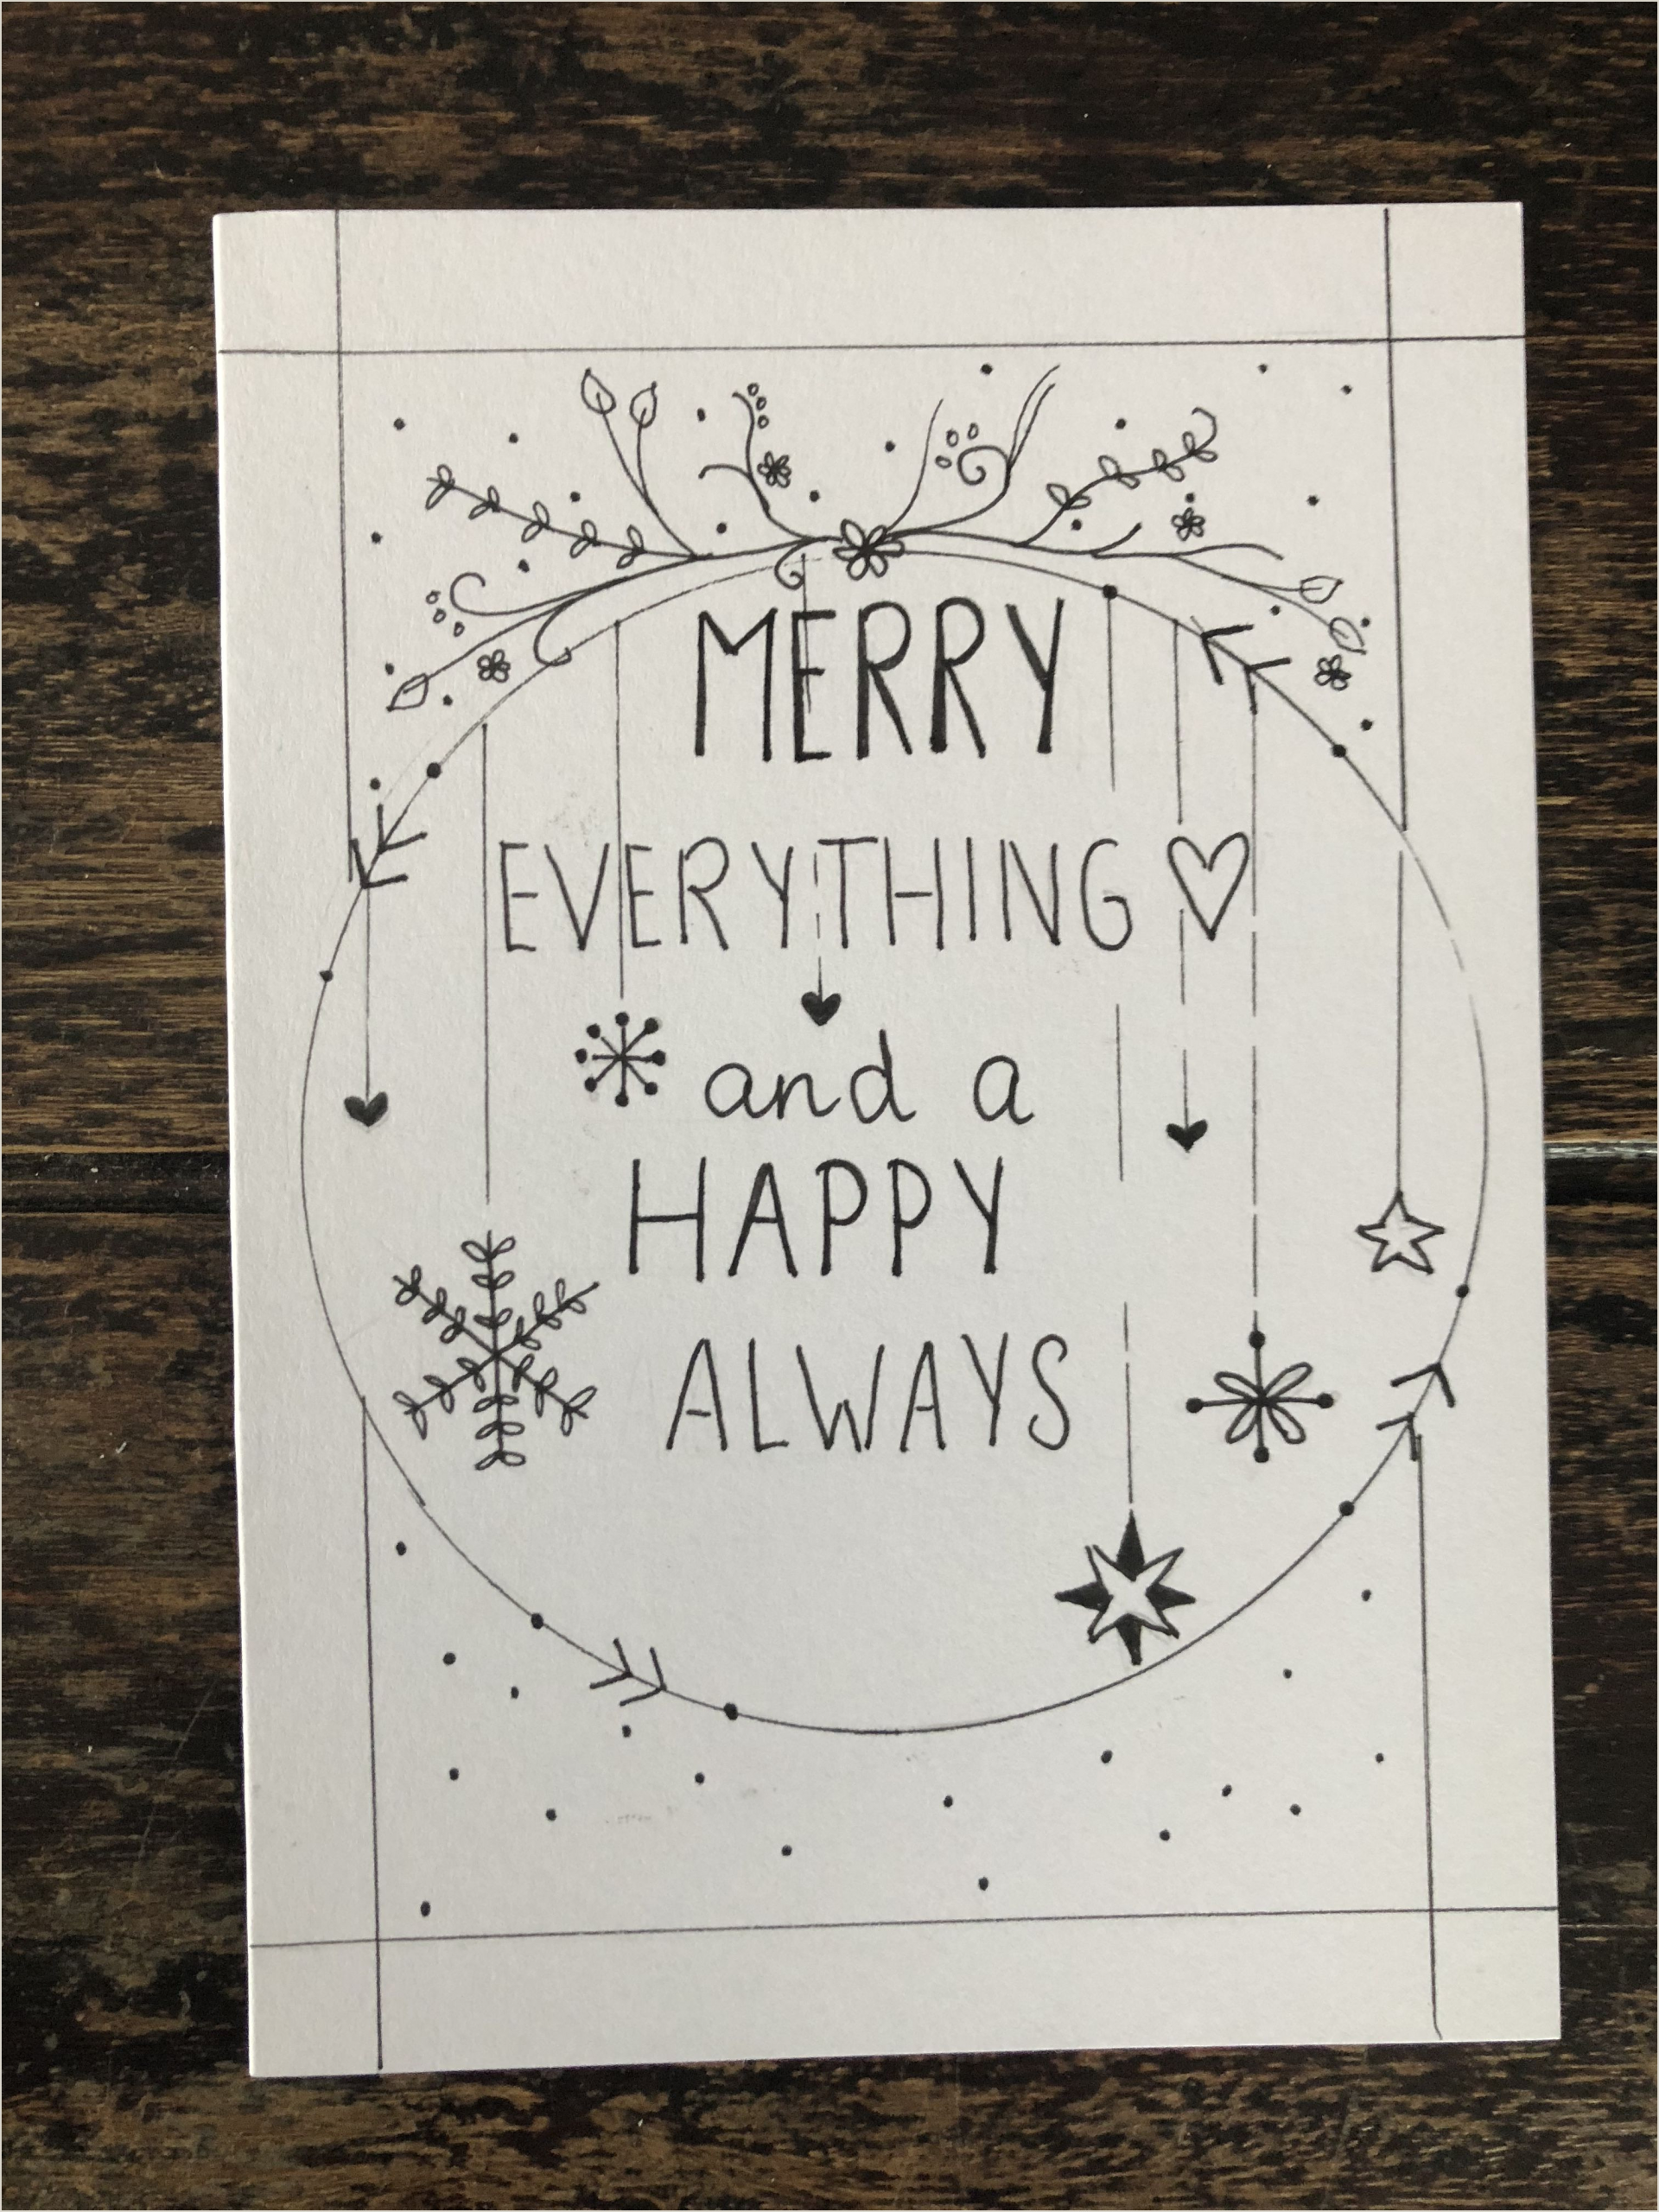 Business Acrds Fresh Christmas Quotes For Cards